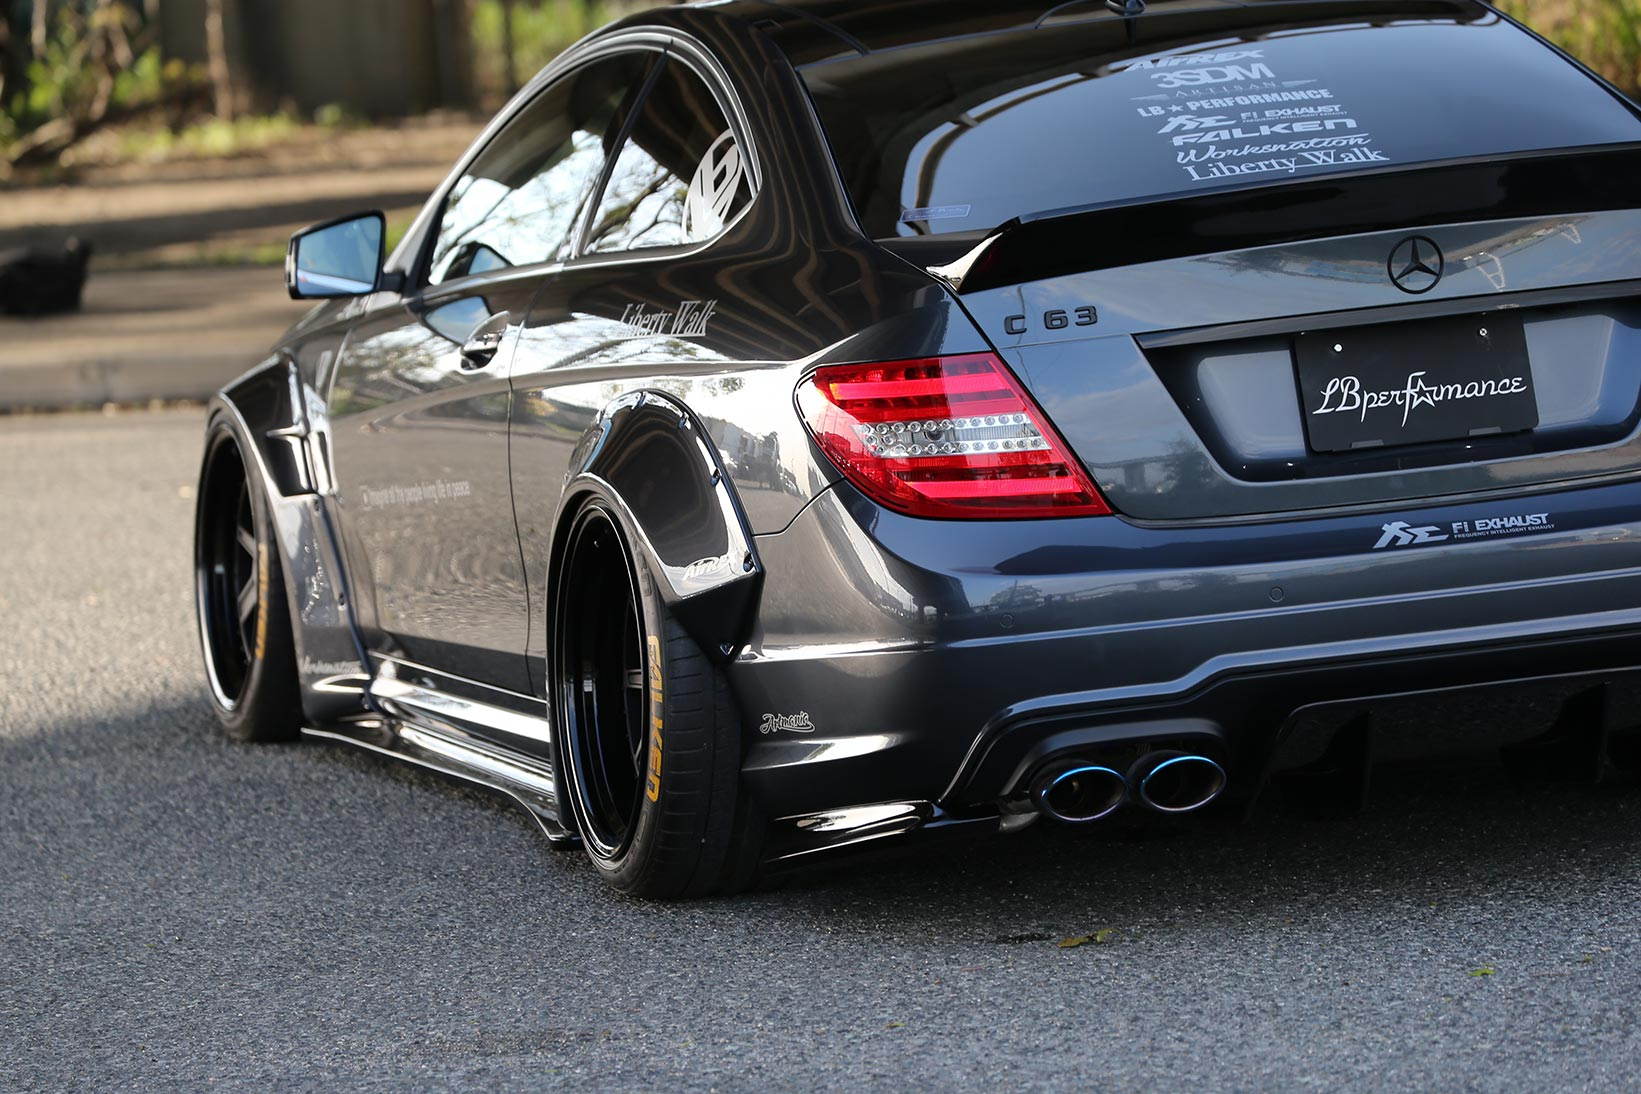 IMG_2303 LB-WORKS MERCEDES-BENZ C63 coupe & sedan  W204